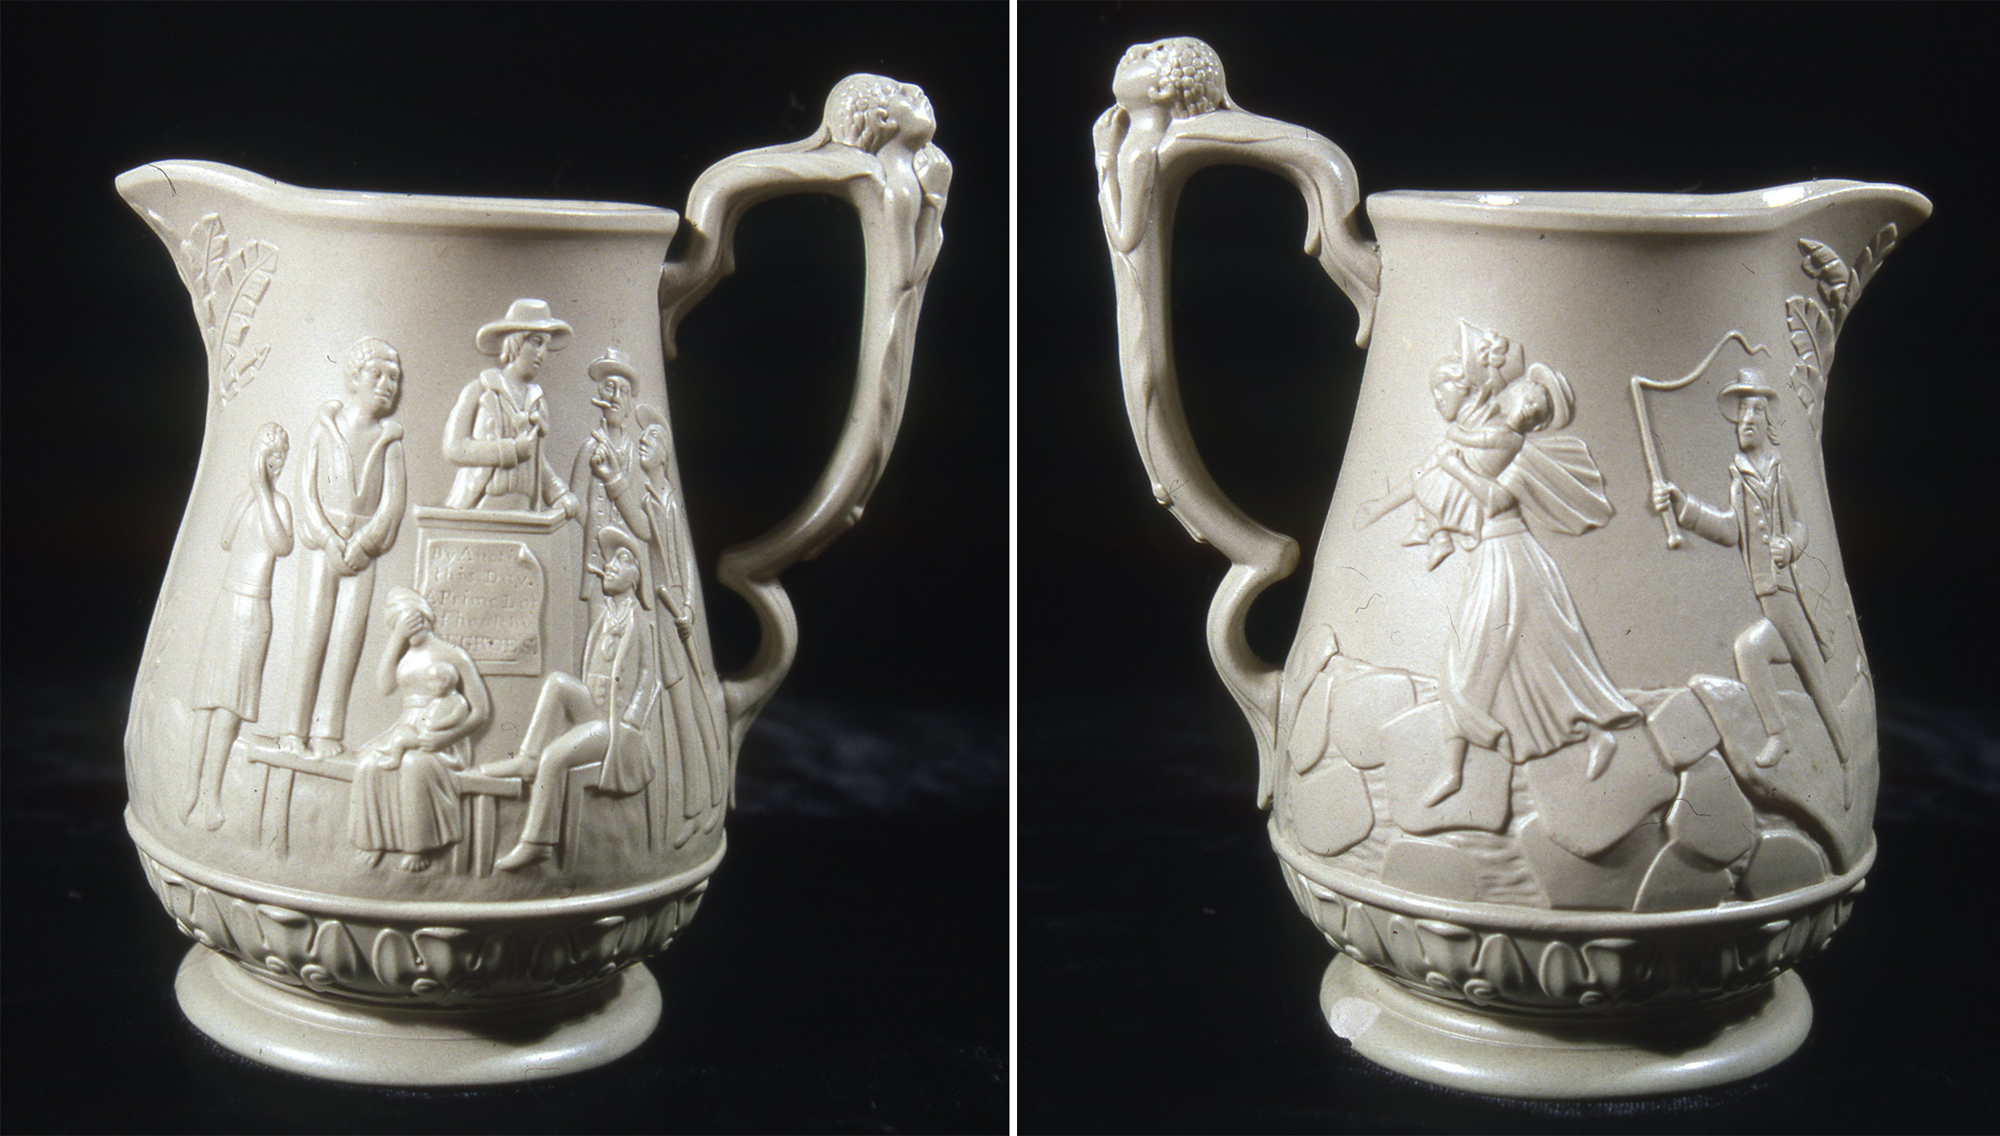 Anti-slavery pitcher, made by E. Ridgeway & Abington, Hanley, England, c. 1853. Gift of Julia A. Grimstad.